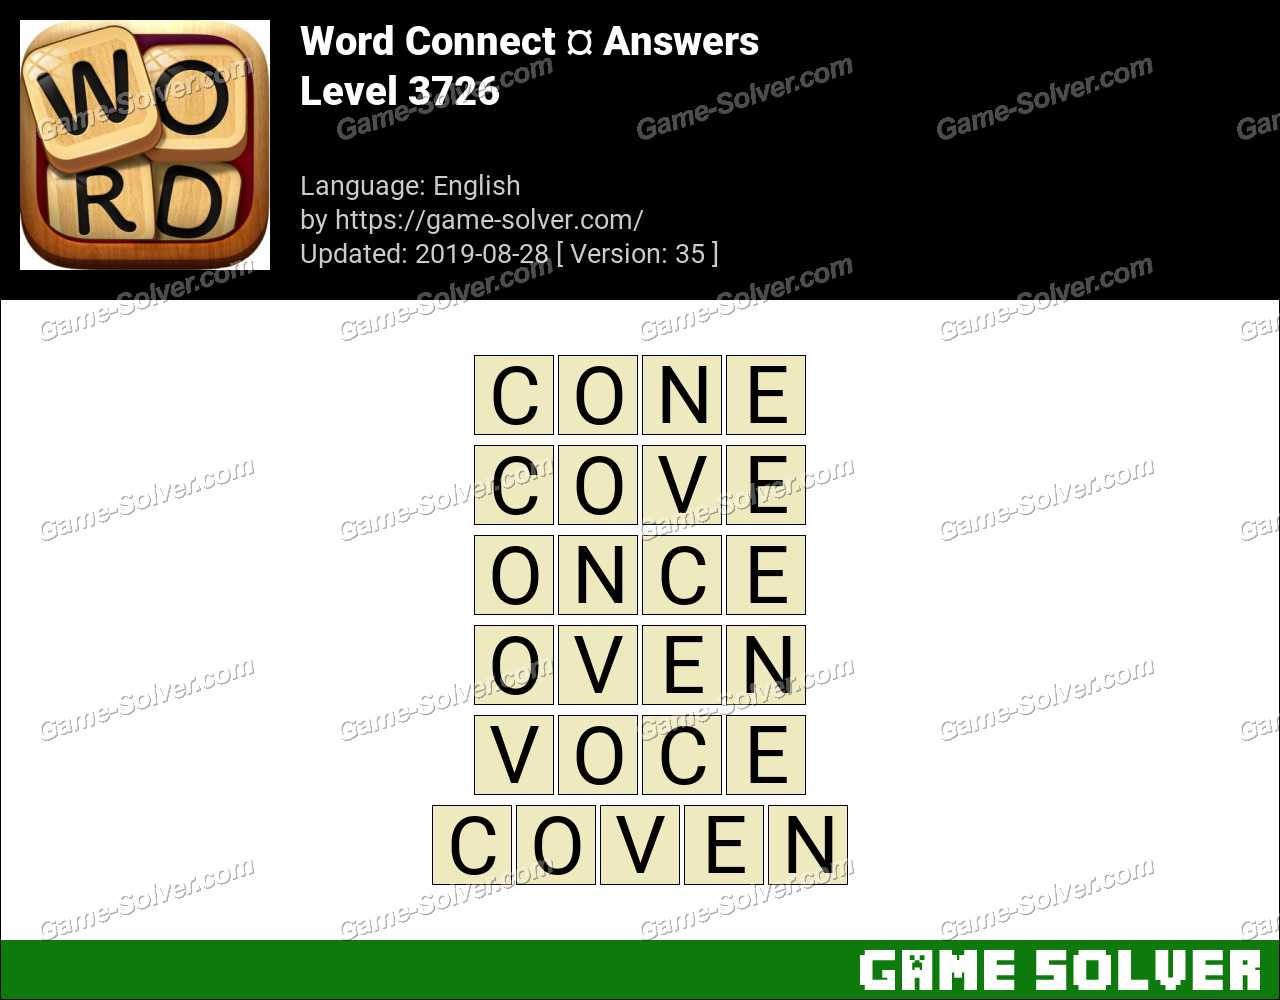 Word Connect Level 3726 Answers